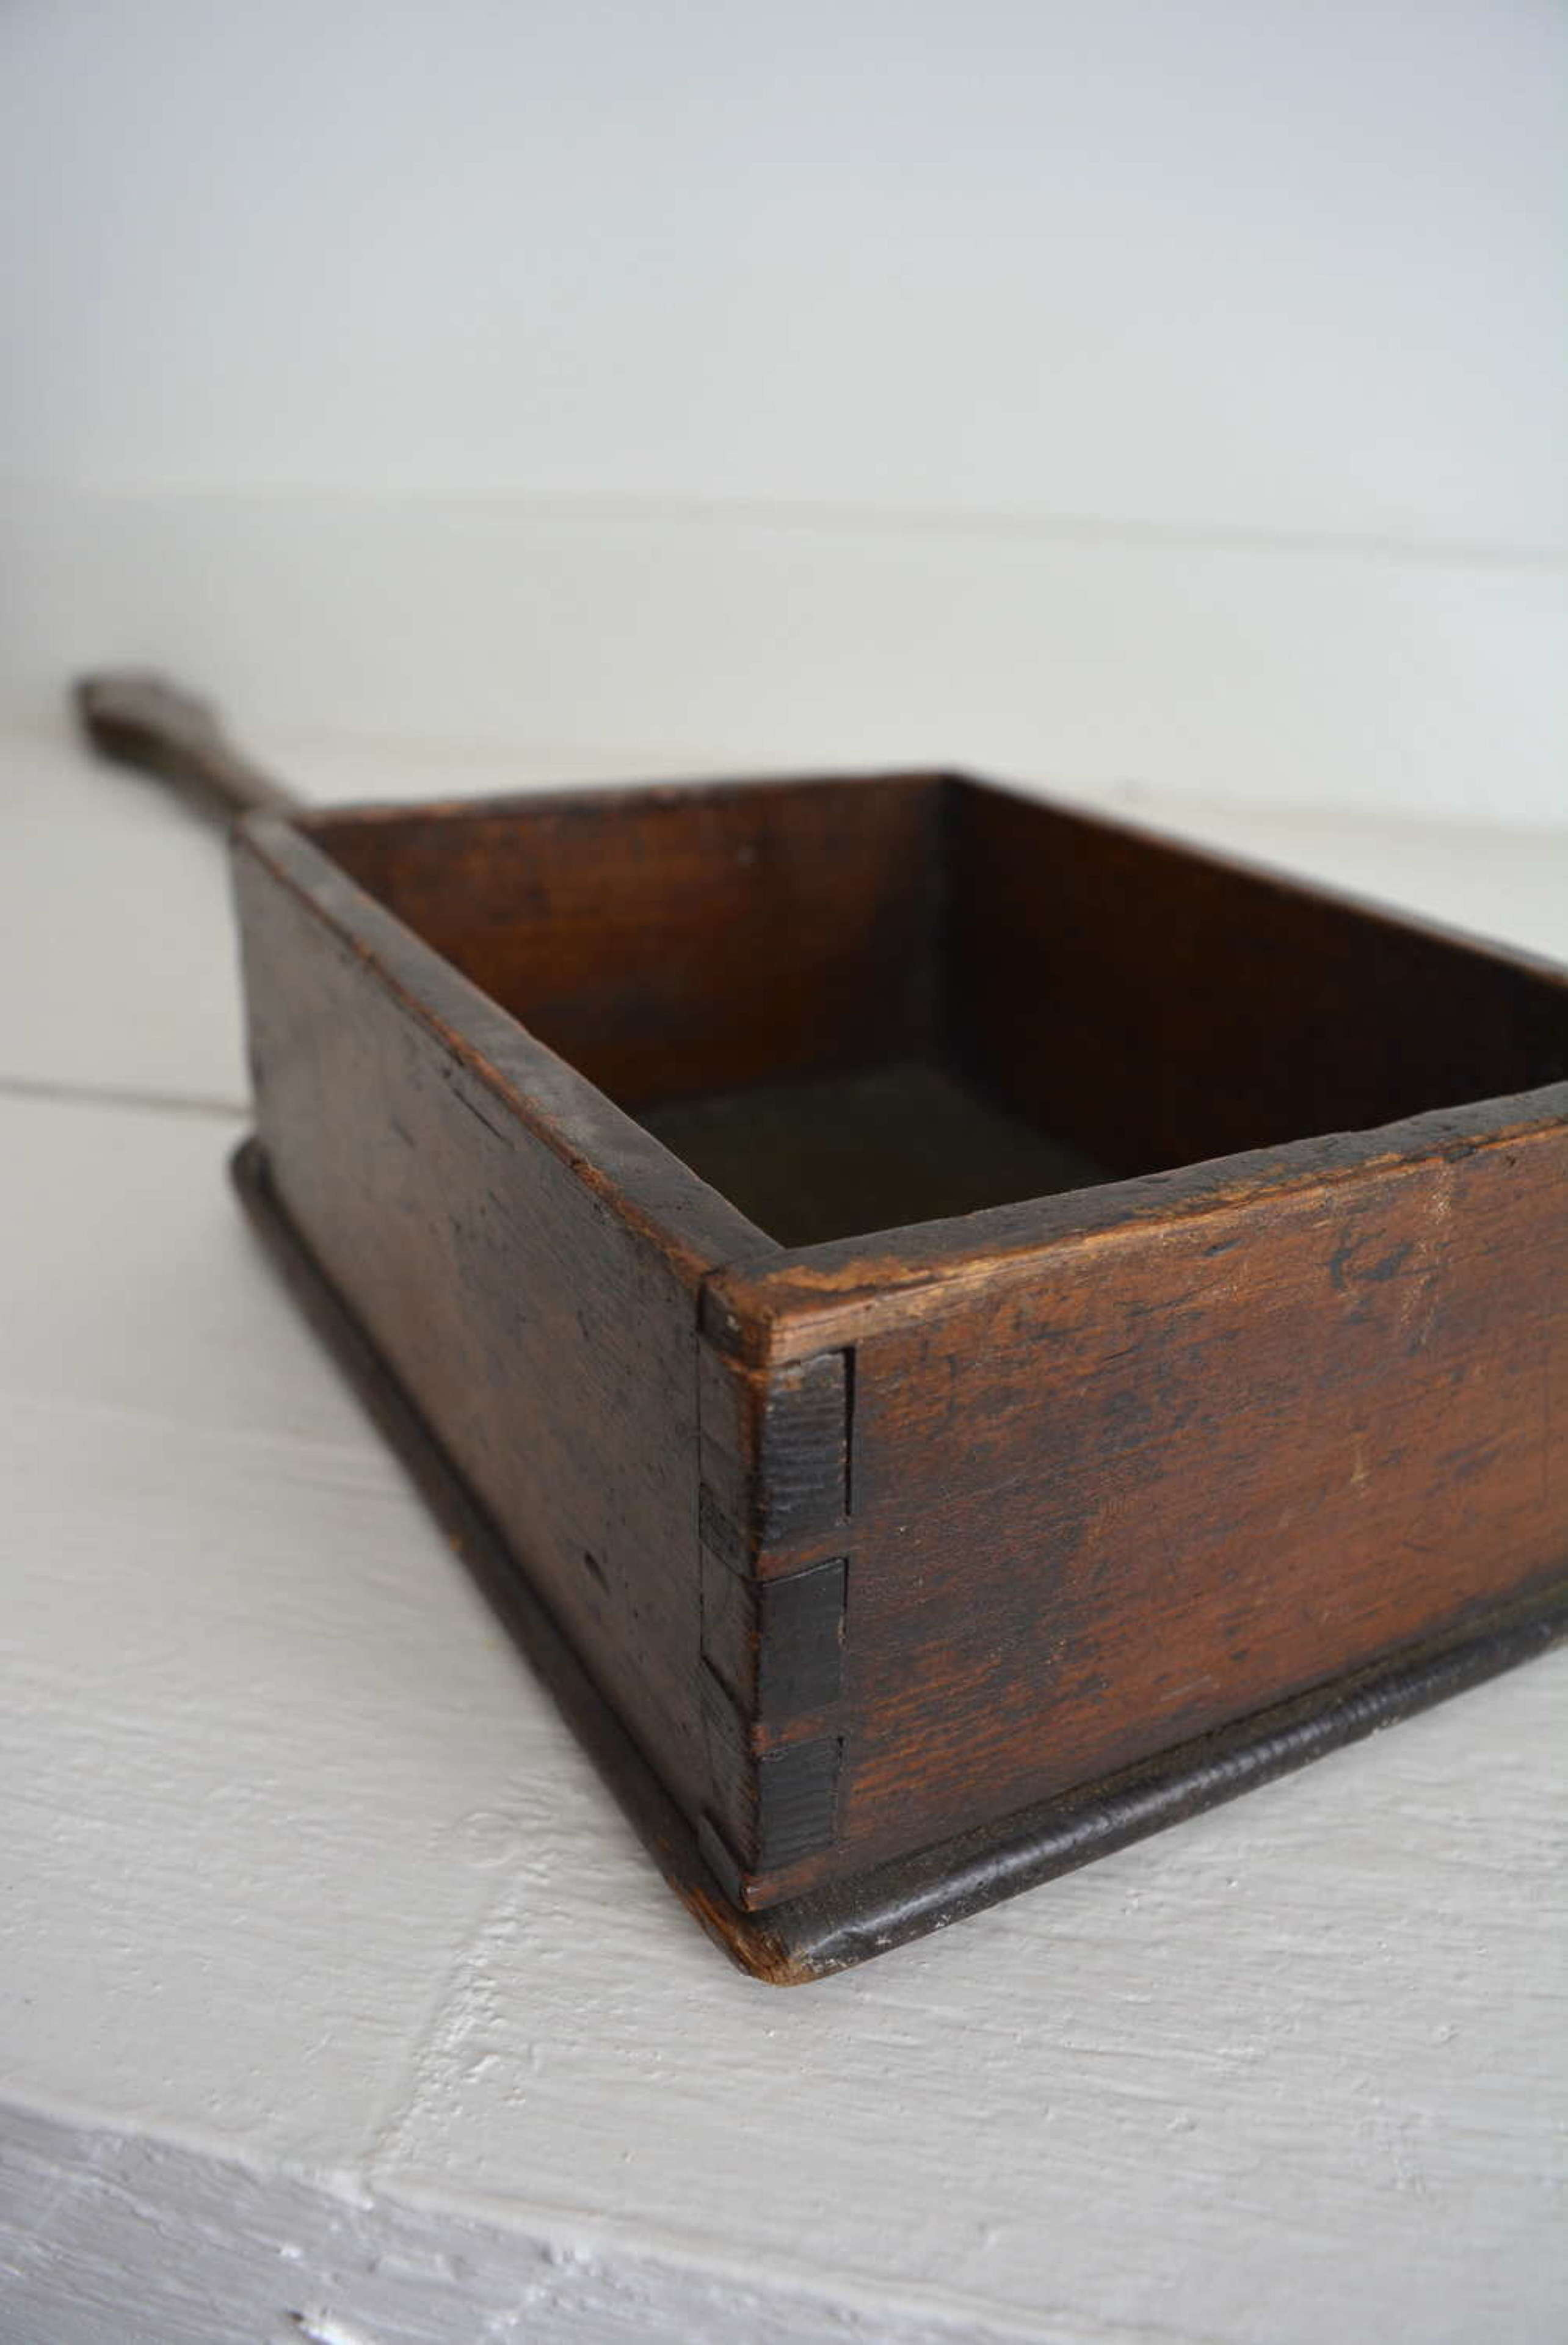 LATE 19TH CENTURY CHURCH COLLECTION BOX